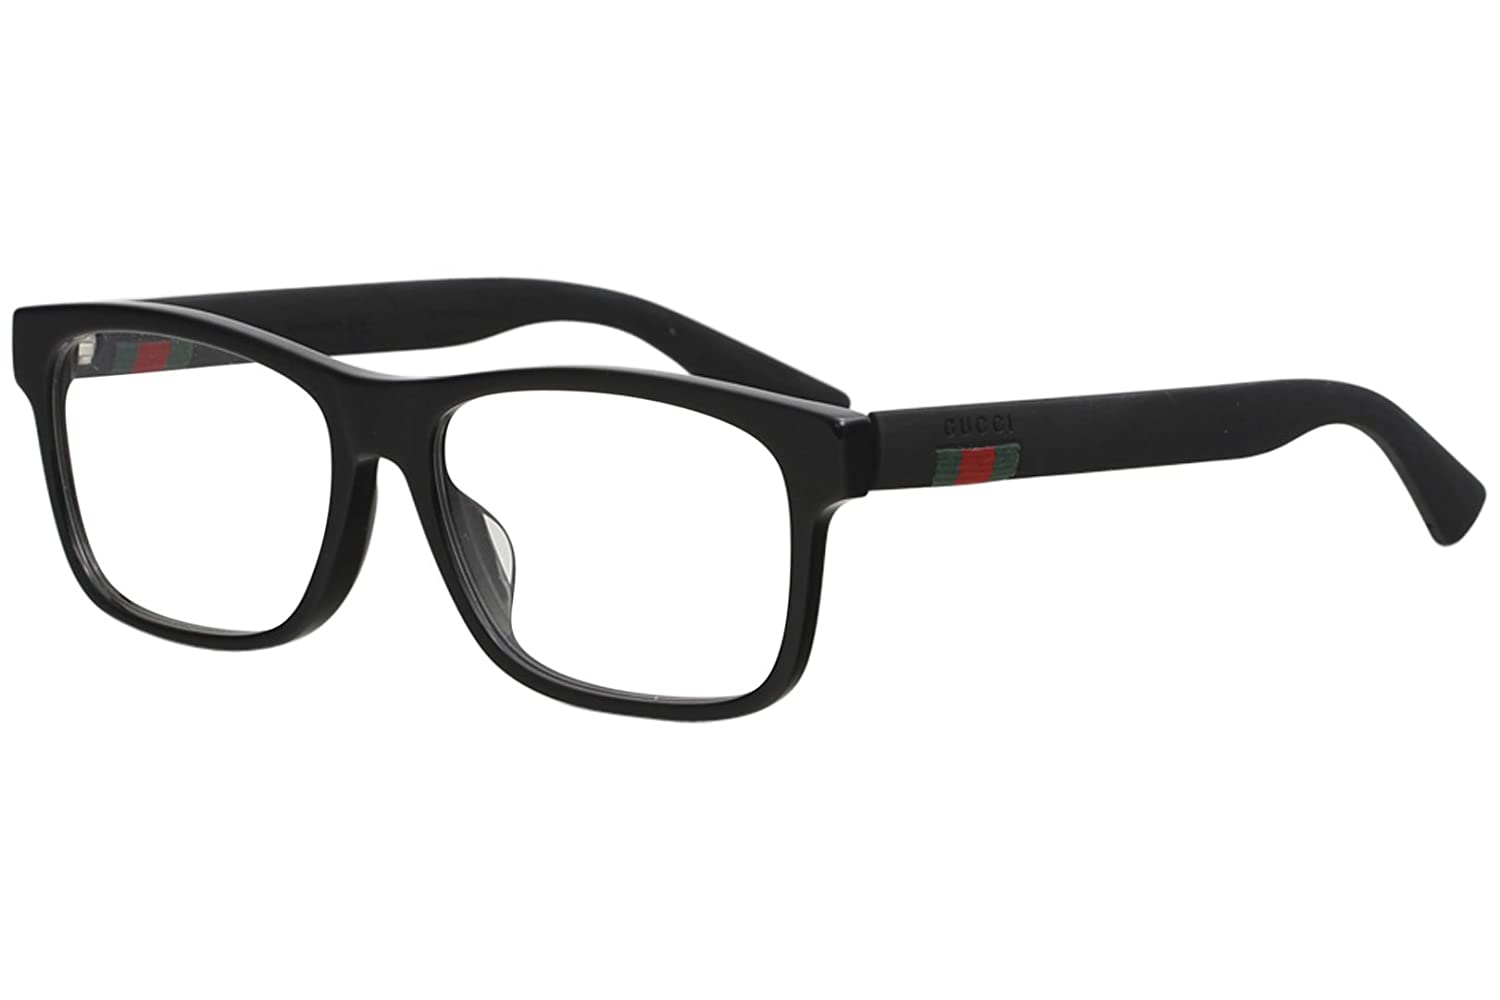 254635c36f20 Amazon.com: Gucci GG 0176O 001 Black Plastic Rectangle Eyeglasses 56mm:  Clothing